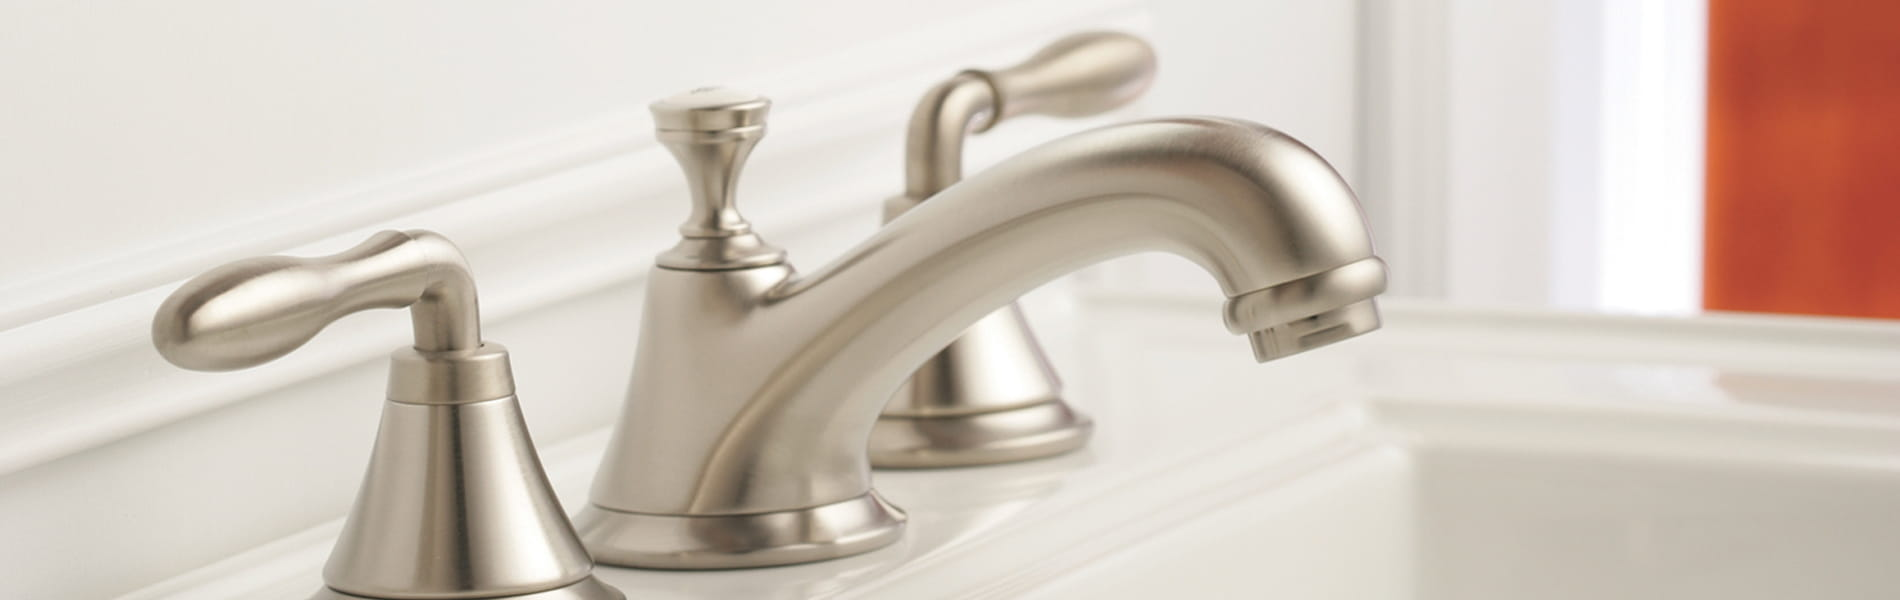 Seabury nickel bathroom faucet in a white room.